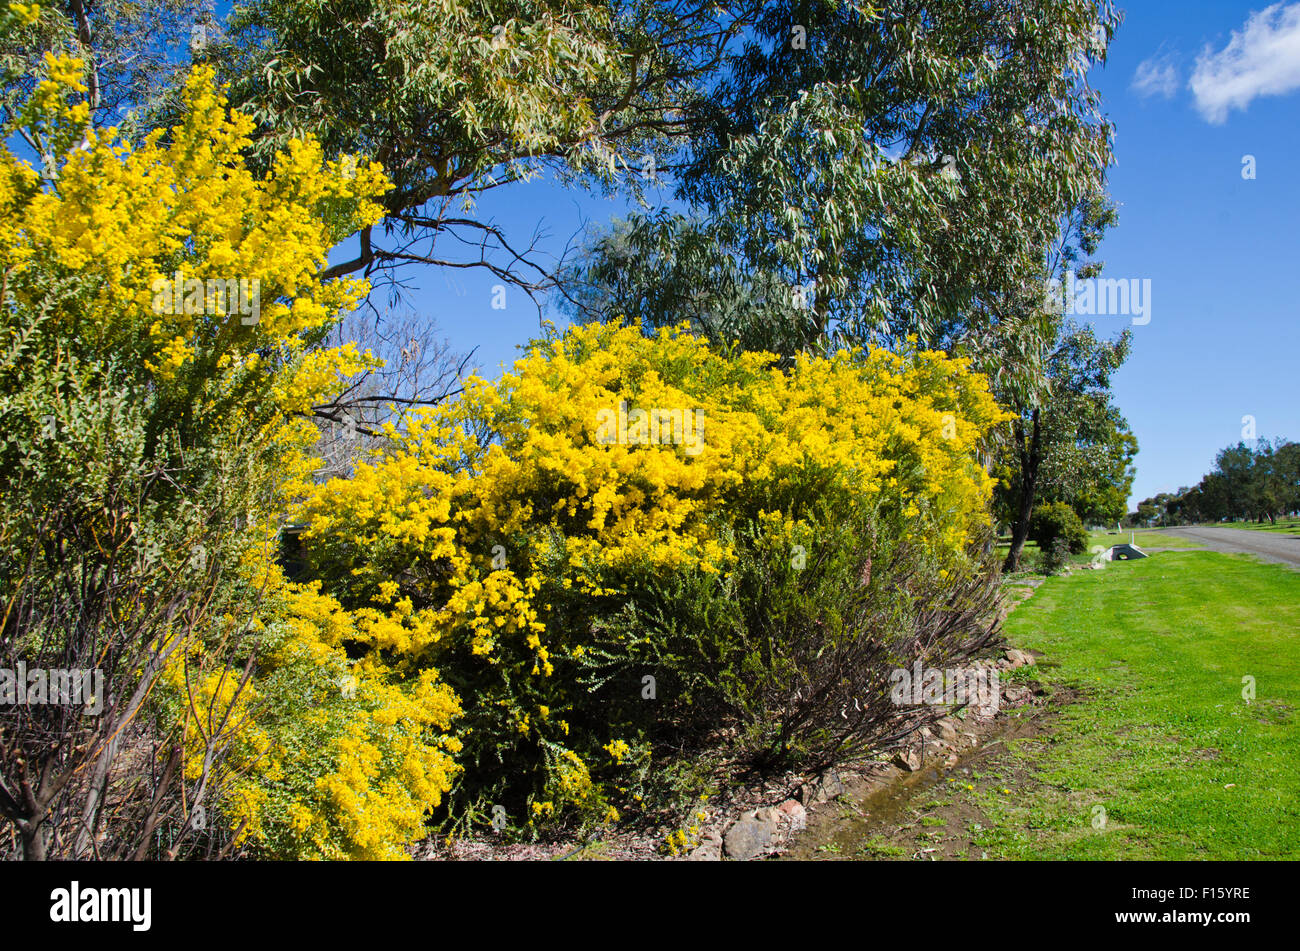 Wattle, Australia's National Floral Emblem also representing the National Colours of green and gold. - Stock Image